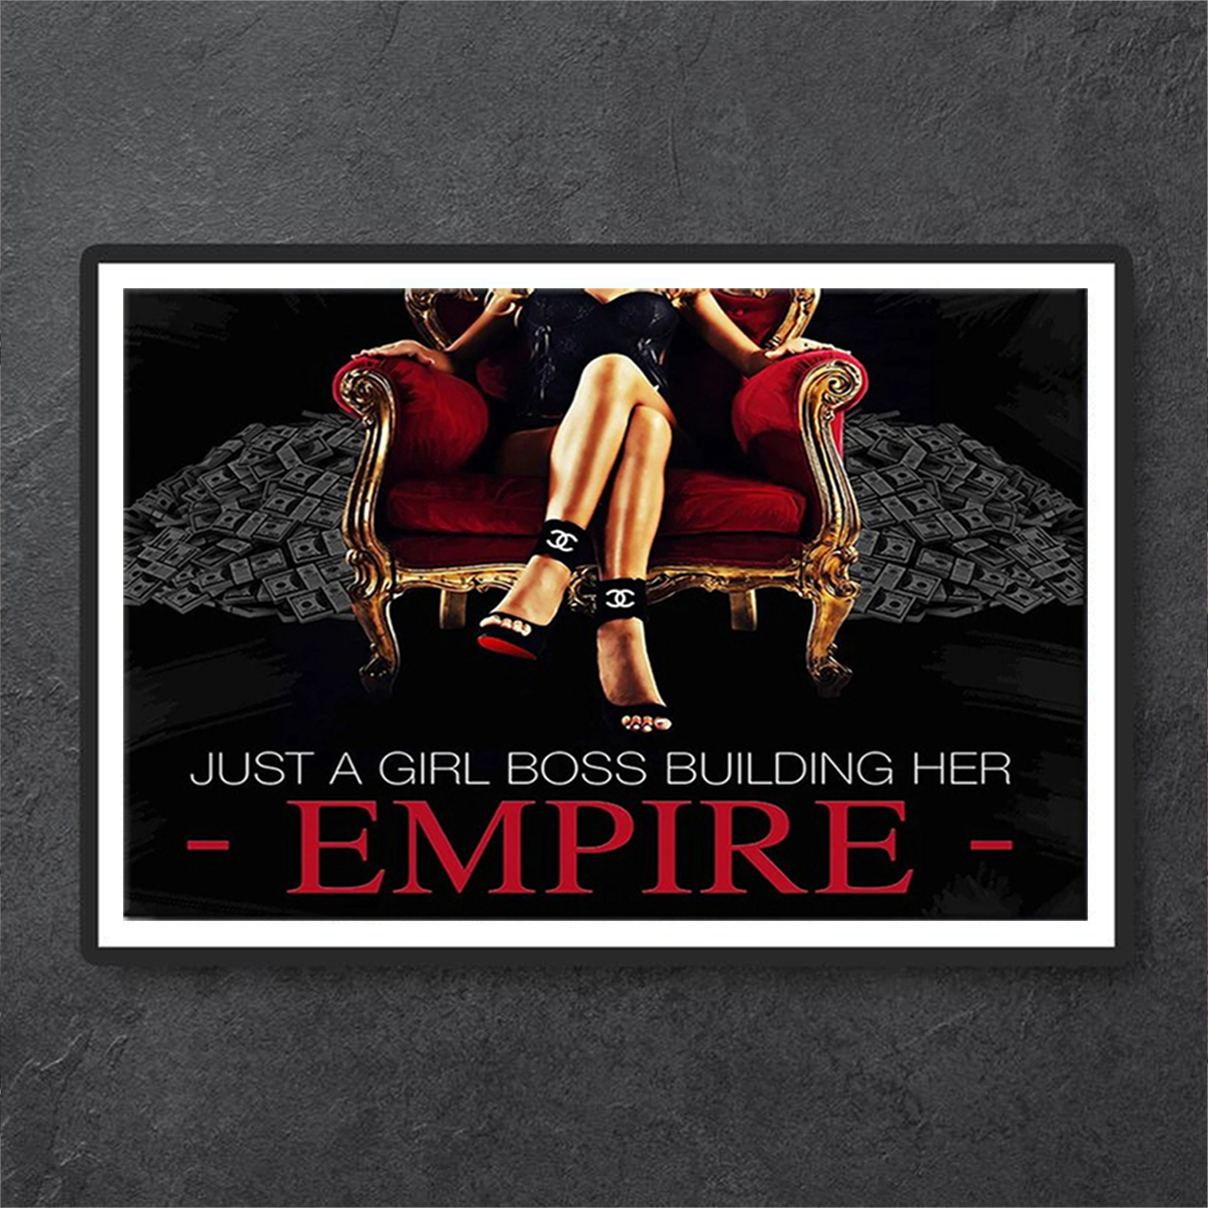 Just a girl boss building her empire poster A3